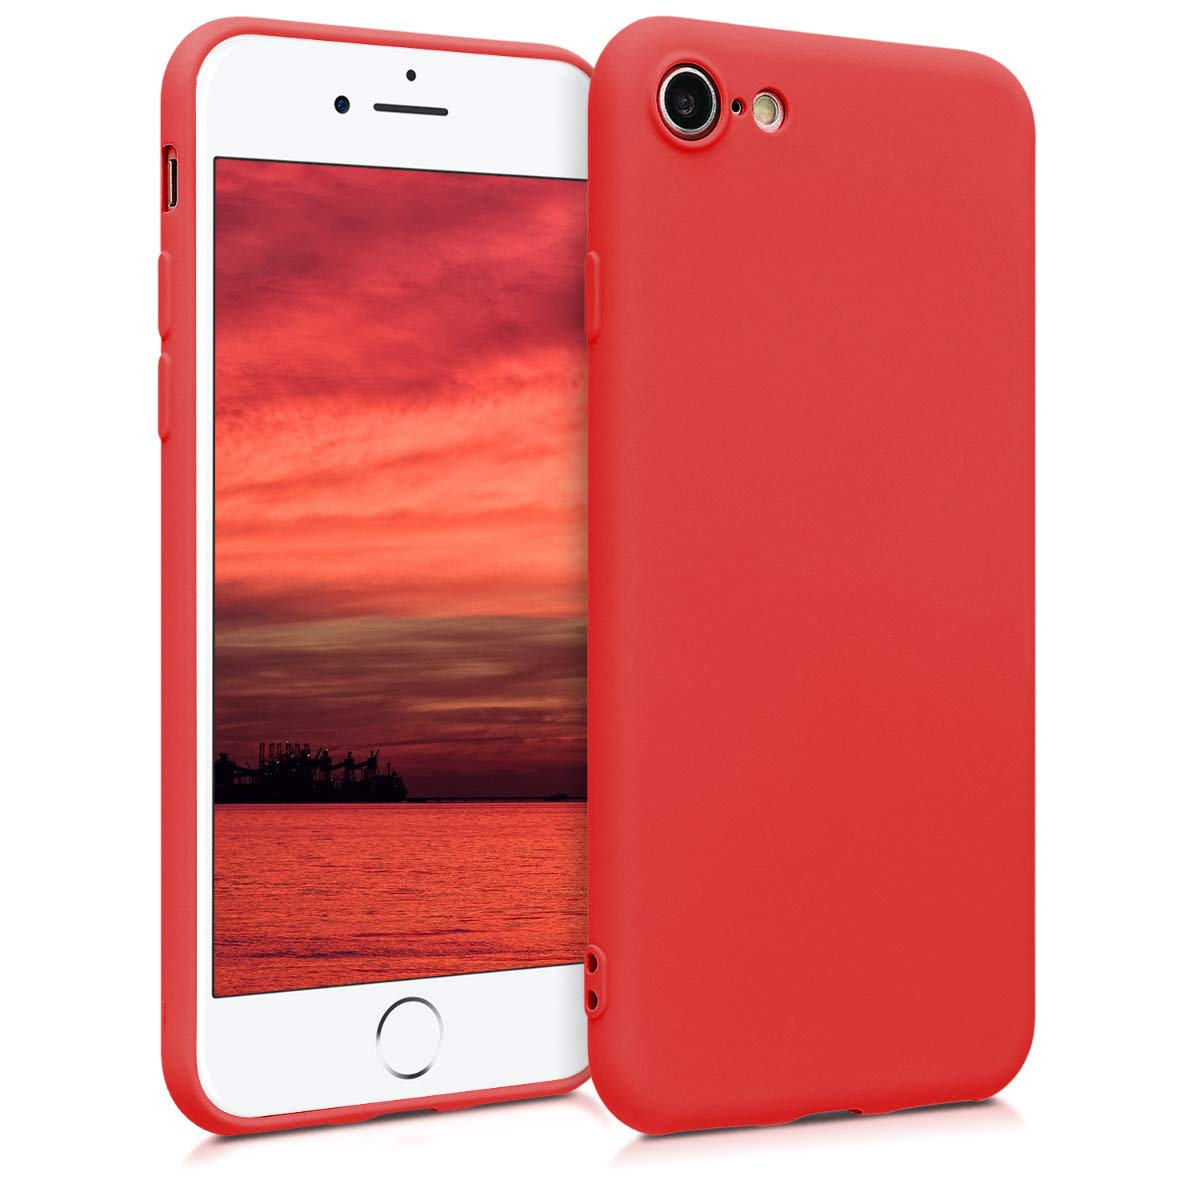 kwmobile TPU Silicone Case for Apple iPhone 7/8 - Soft Flexible Shock Absorbent Protective Phone Cover - Neon Red